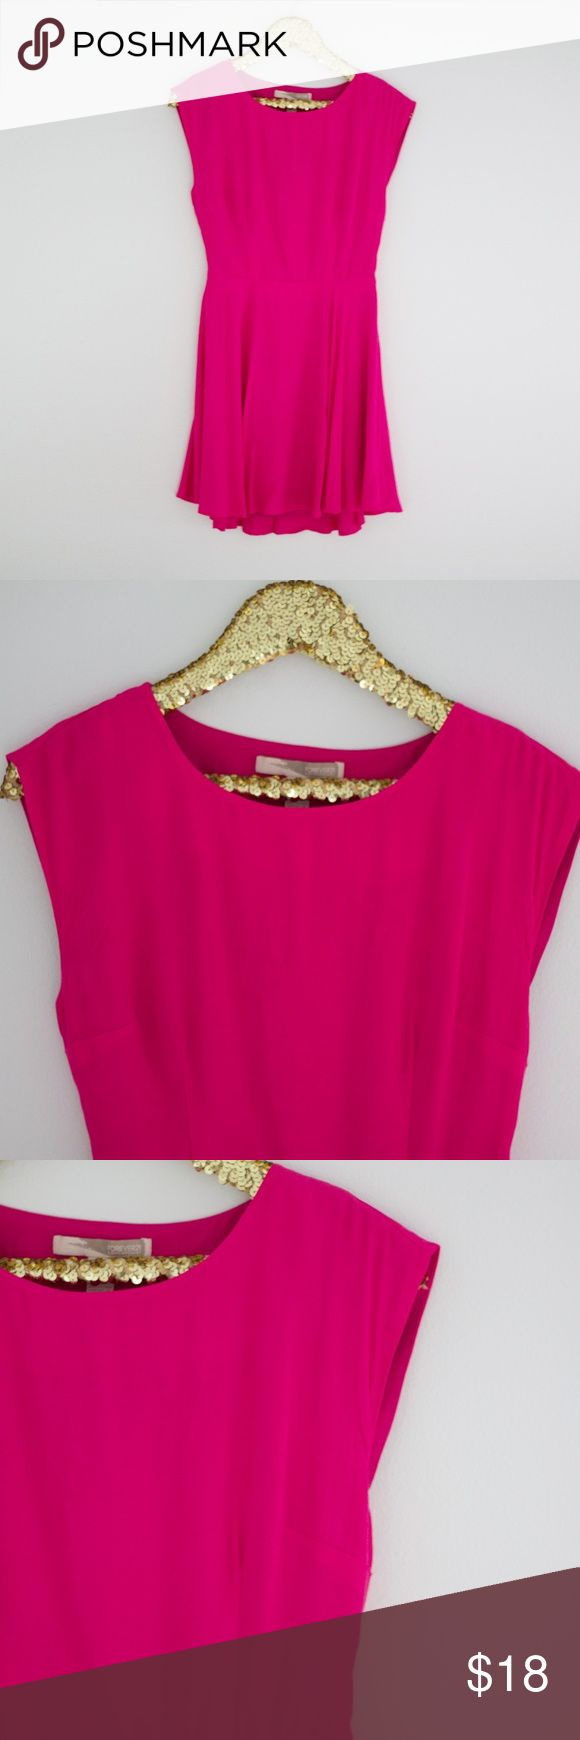 Forever 21 Contemporary Scallop Back Pink Dress Forever 21 Contemporary Scallop Back Pink Dress | The open back detail on this dress gives this dress some real punch and the bright pink color is to die for! Styling Tip: Accessories with subtle gold jewelry! Forever 21 Dresses